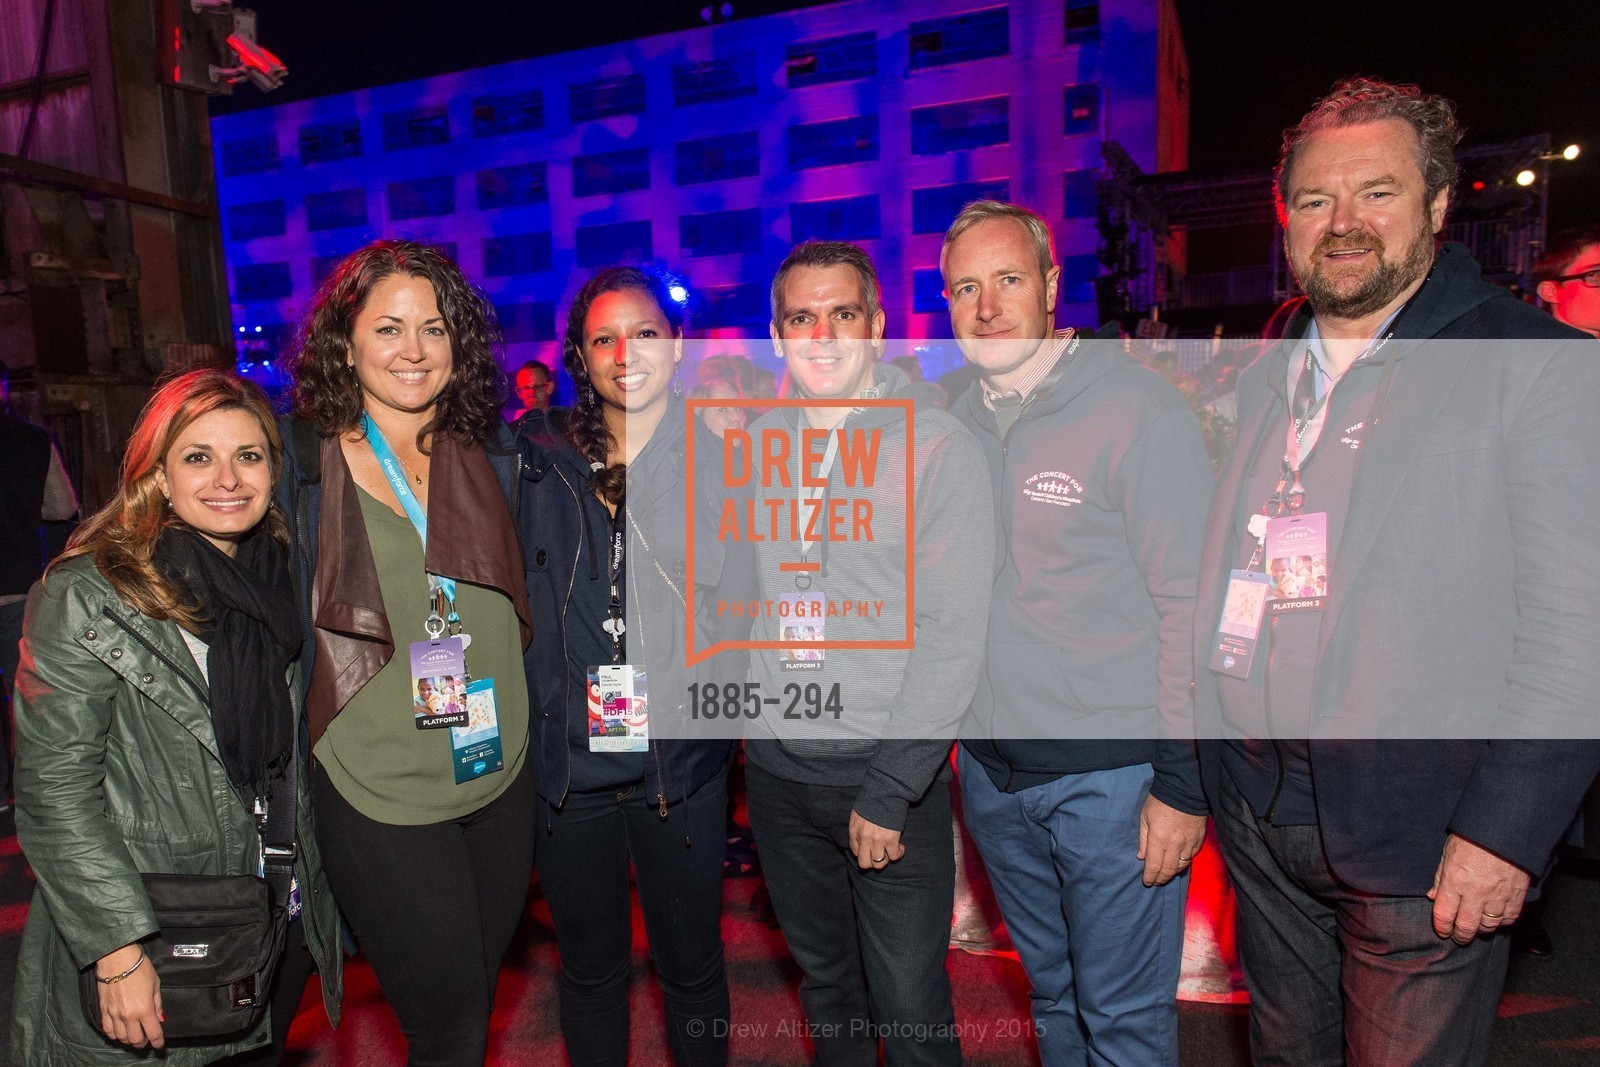 Bounia Lievan, Tracy Kambias, Nisa Badard, Greg Holden, Kevin Walsh, The Concert For UCSF Benioff Children's Hospital, Pier 70, September 17th, 2015,Drew Altizer, Drew Altizer Photography, full-service agency, private events, San Francisco photographer, photographer california